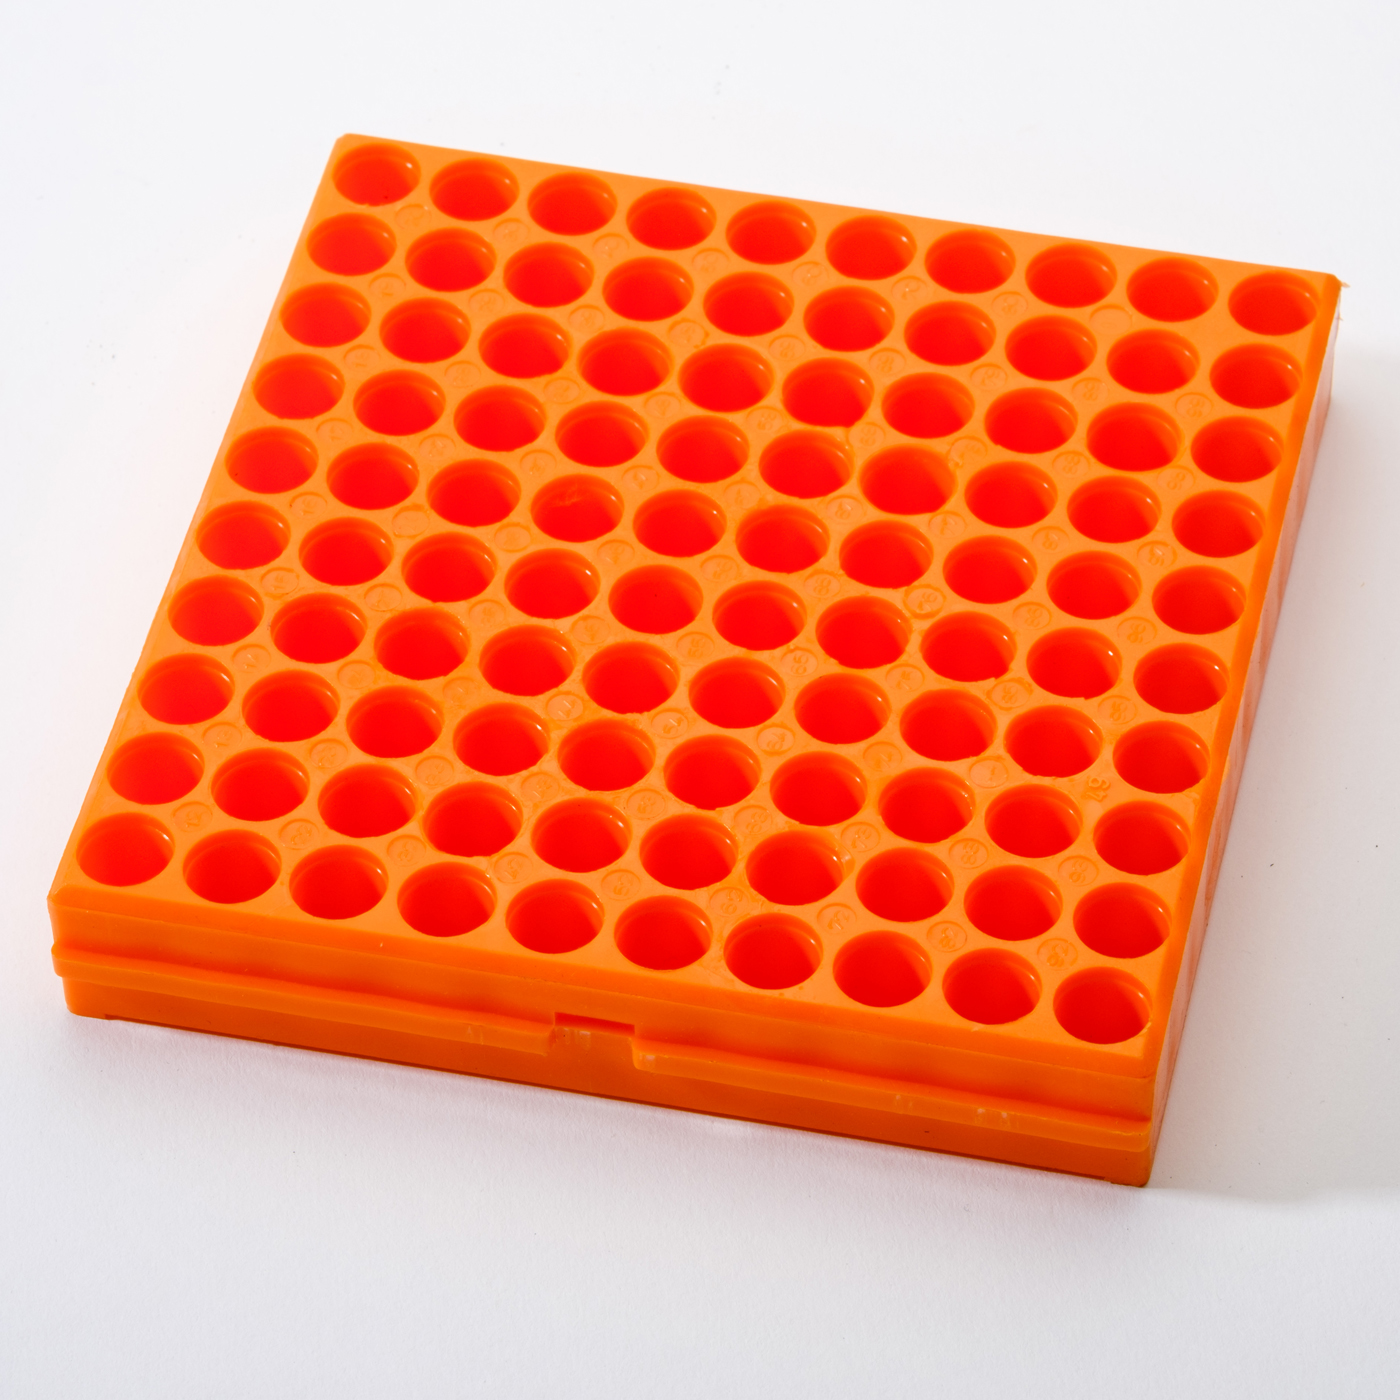 A Professional Plastic Injection Moulding Service